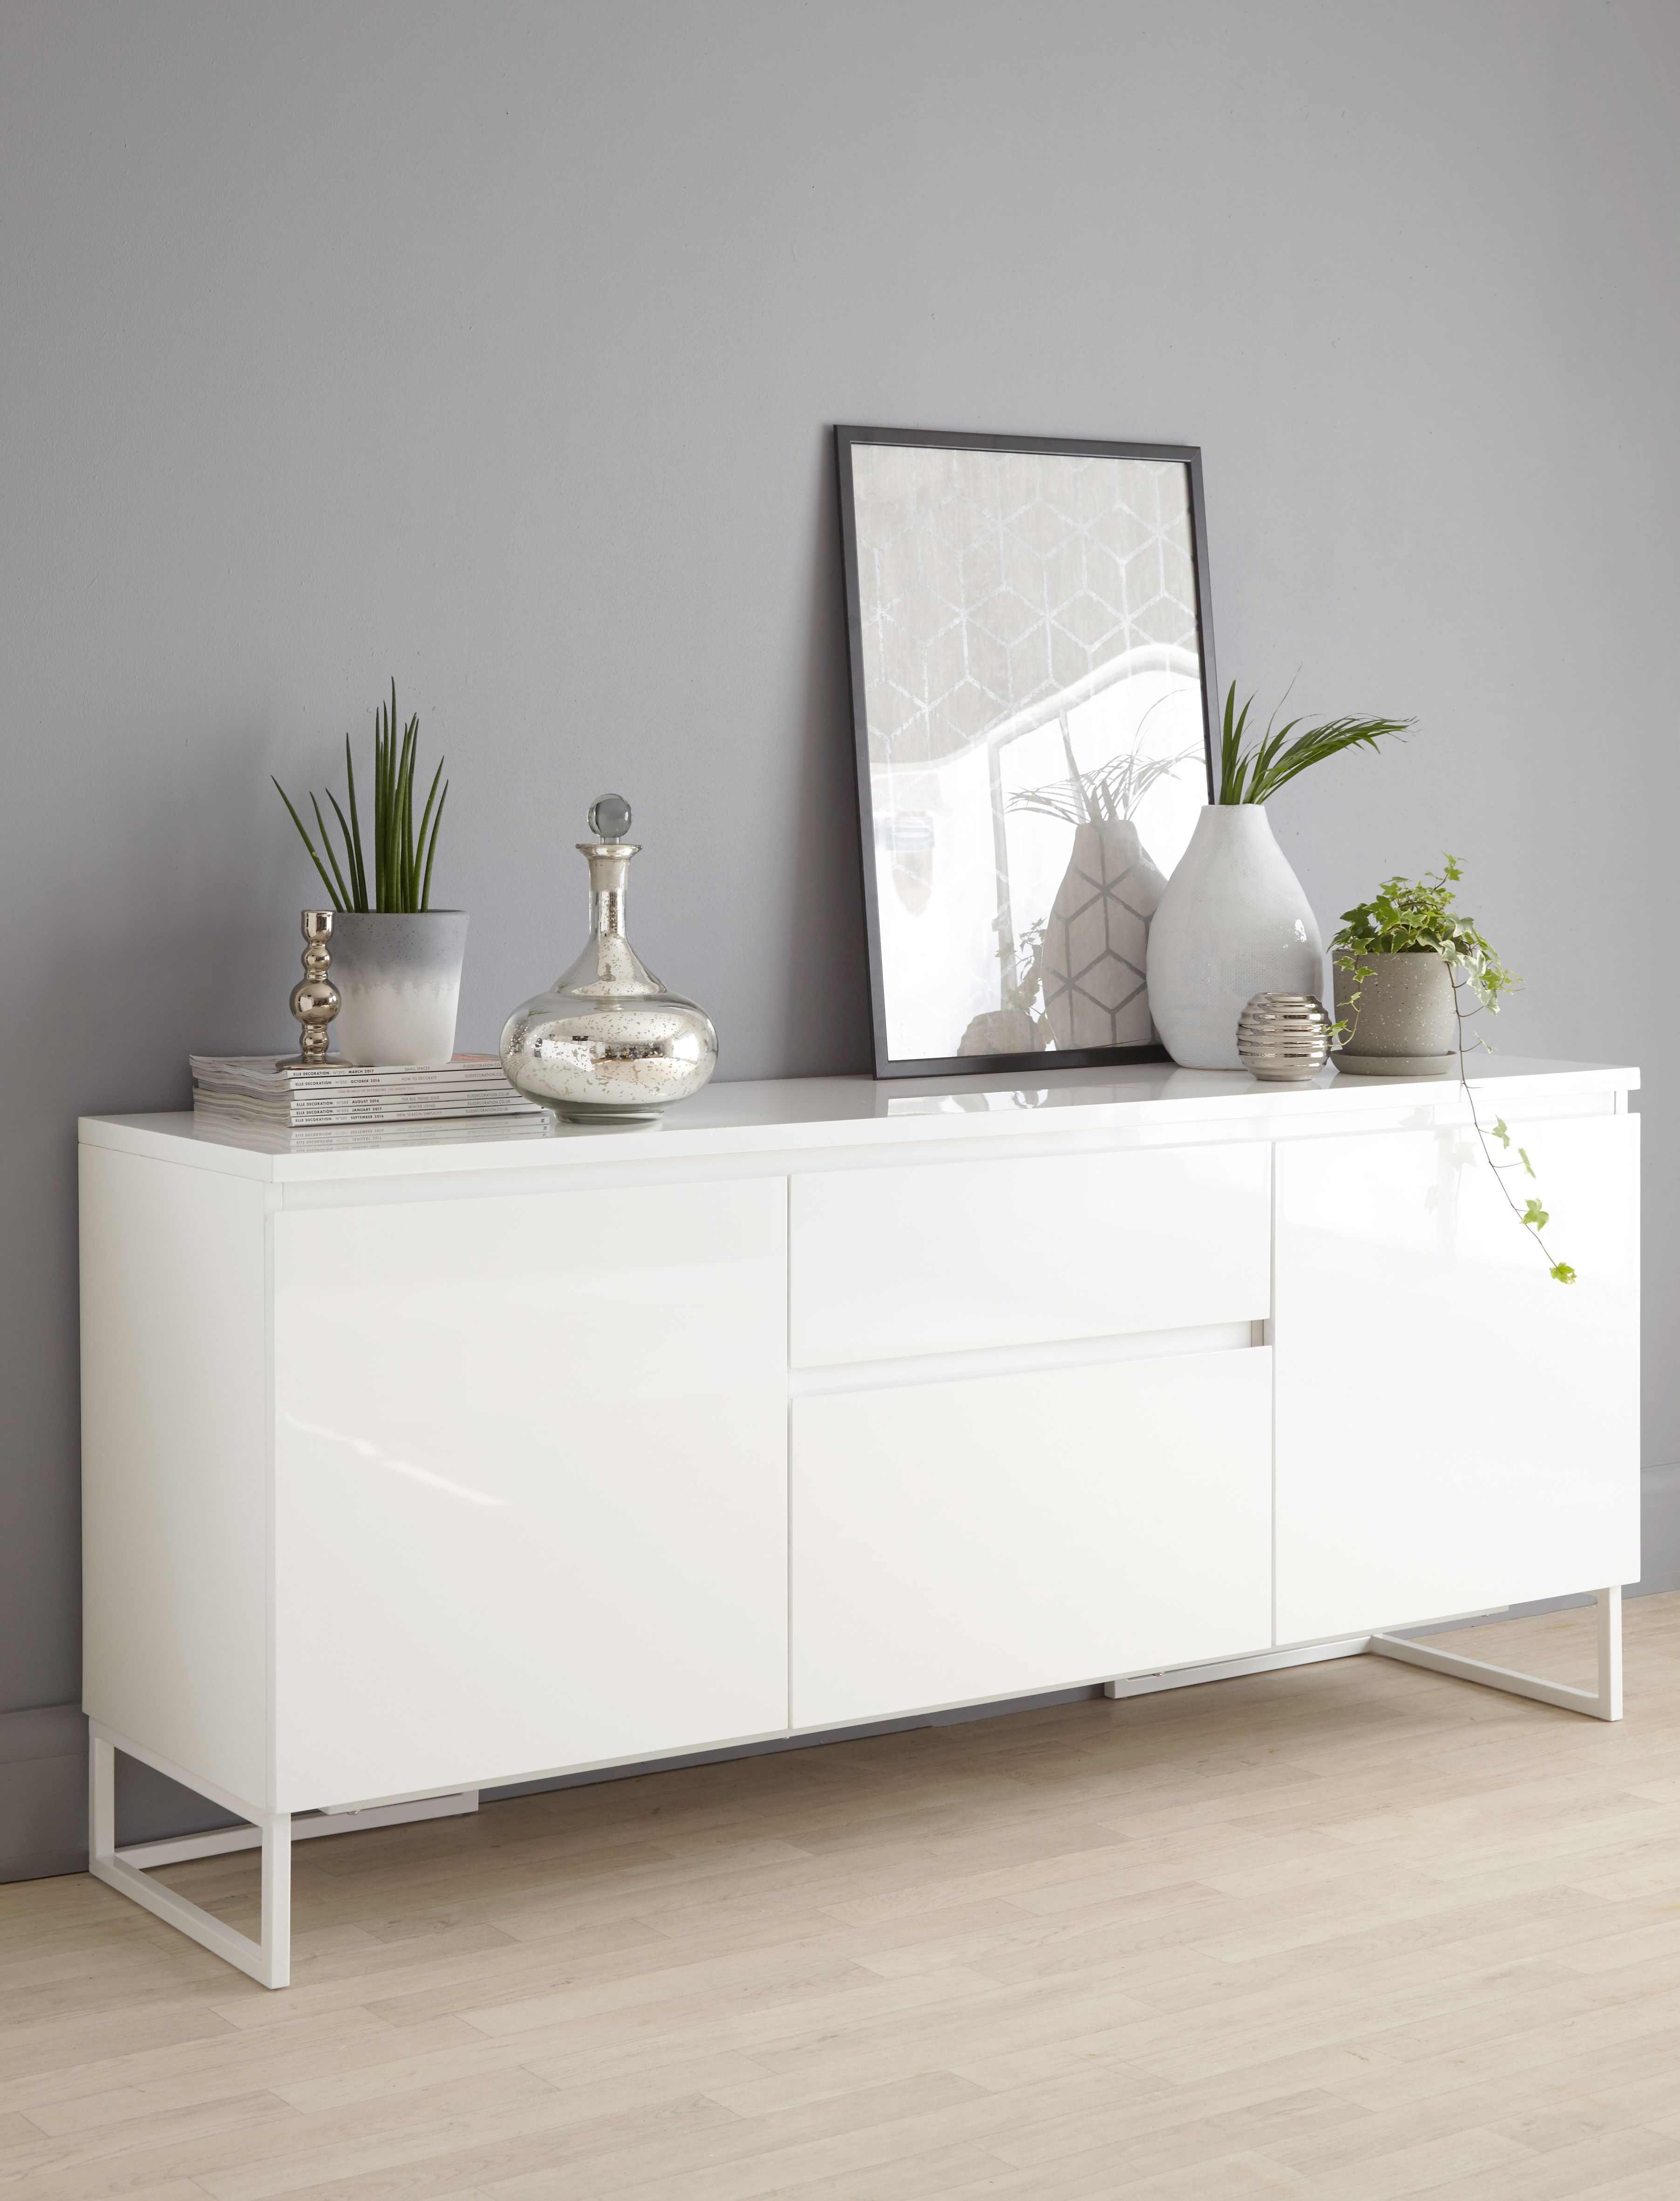 Sciae Floyd Contemporary High Gloss White Large 2 Door Sideboard